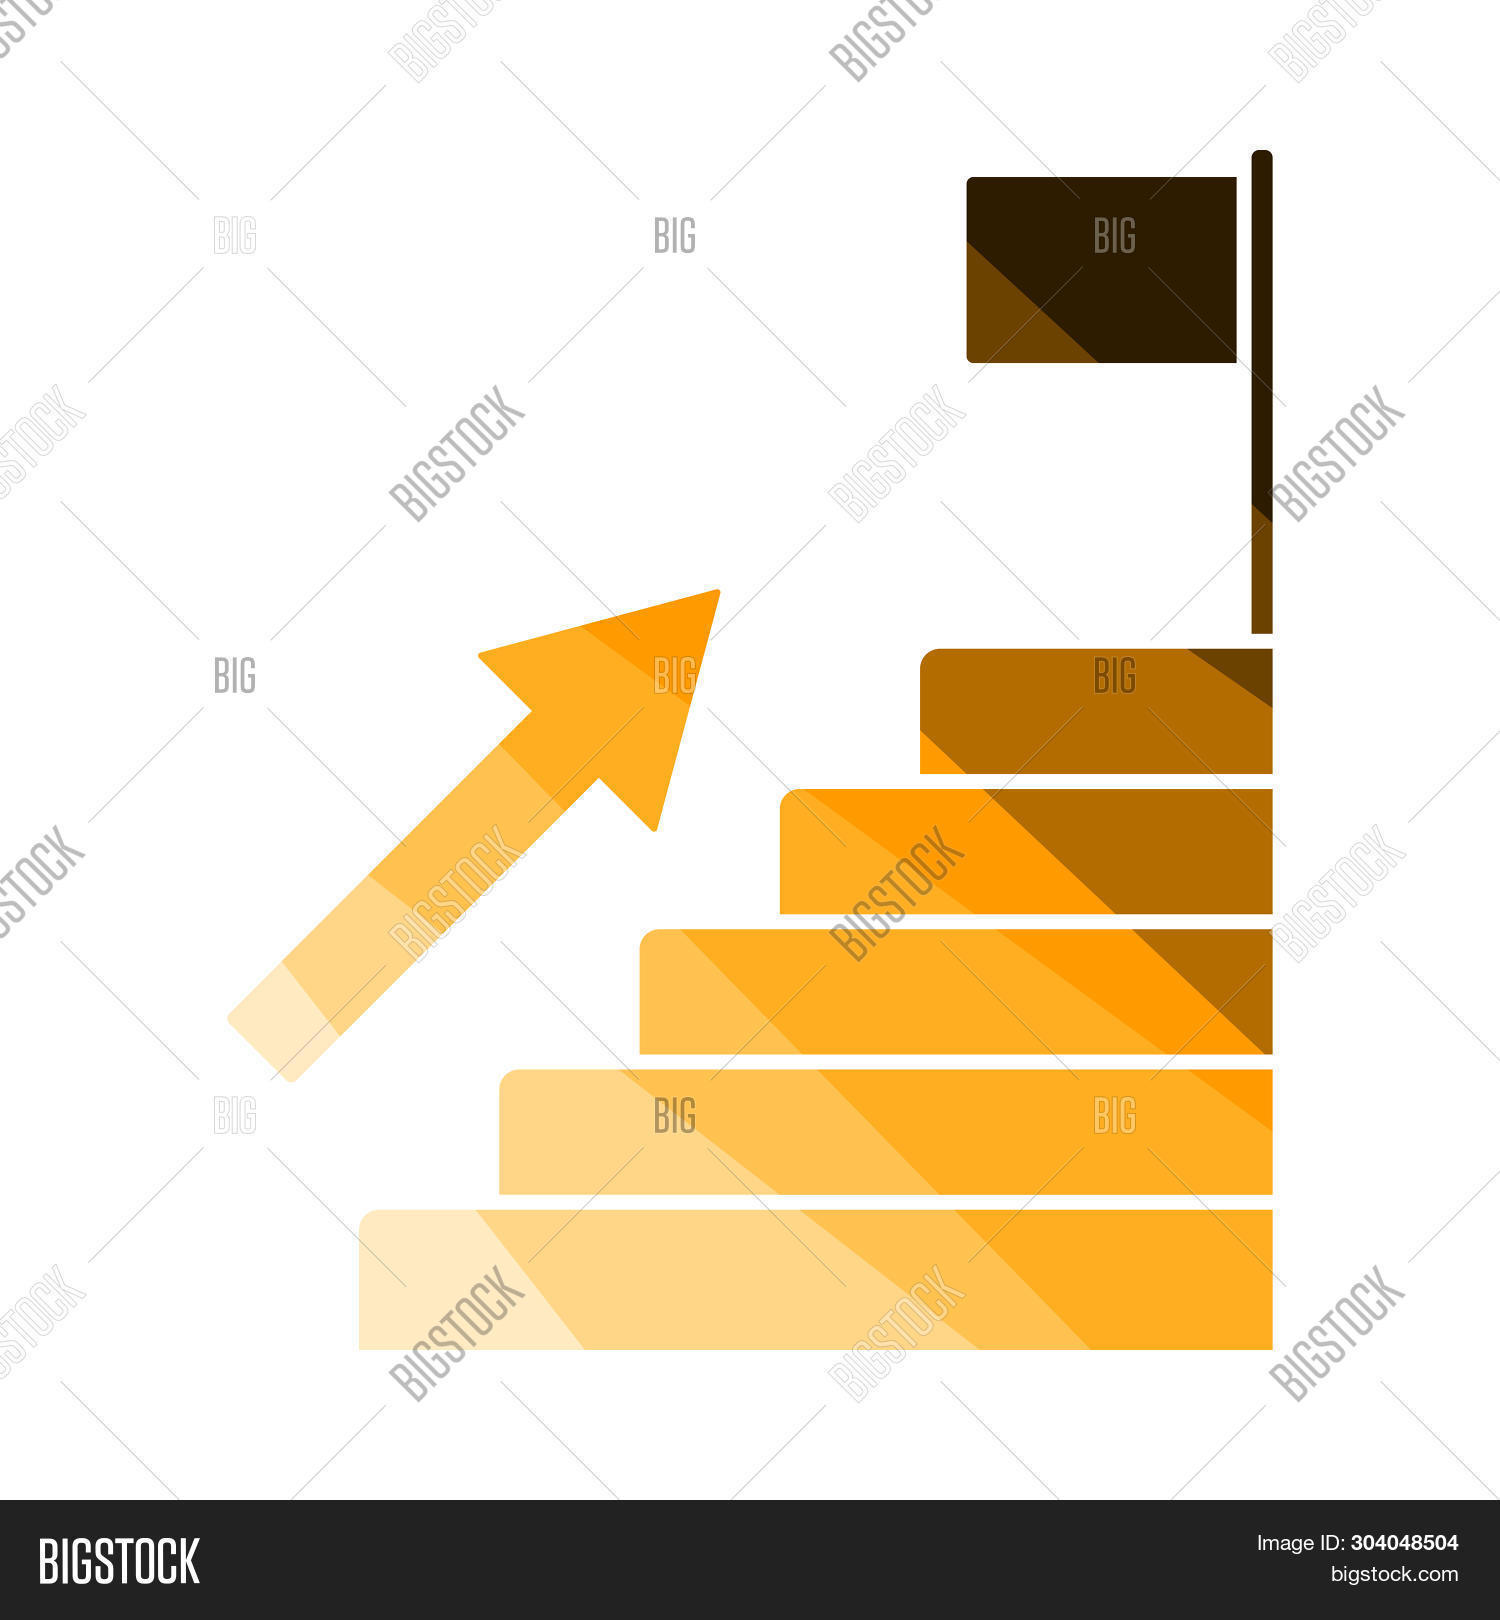 achievement,aim,arrow,business,career,climbing,color,concept,development,flag,graphic,growth,icon,illustration,increase,isolated,job,ladder,progress,project,promotion,sign,stairway,startup,stencil,success,symbol,up,vector,work